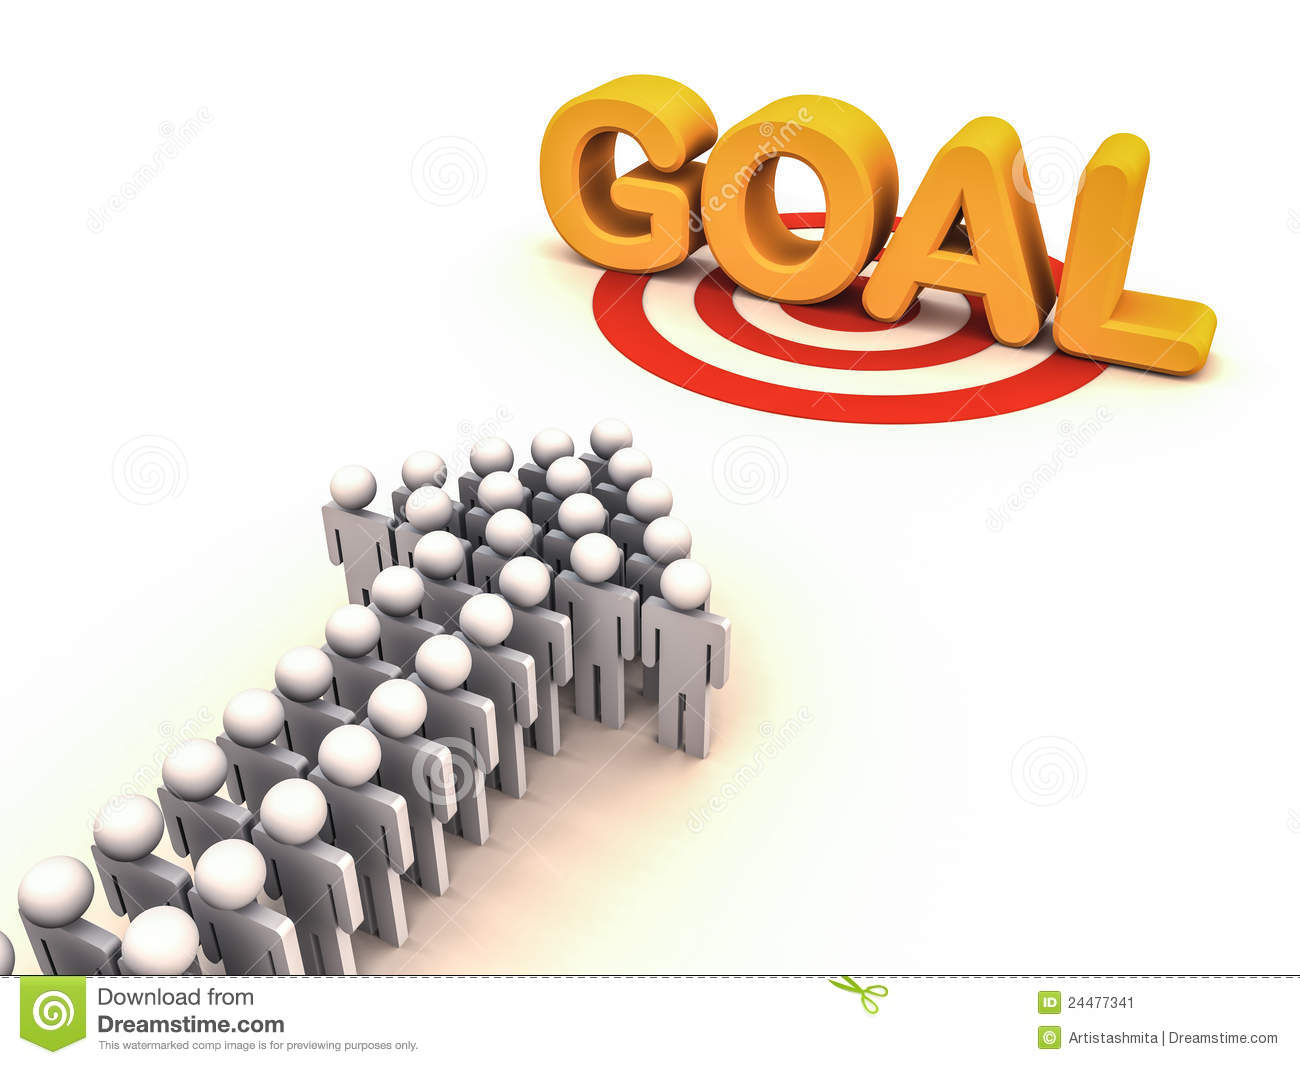 Teamwork and goals clipart picture transparent library Goals clipart common goal - 93 transparent clip arts, images ... picture transparent library